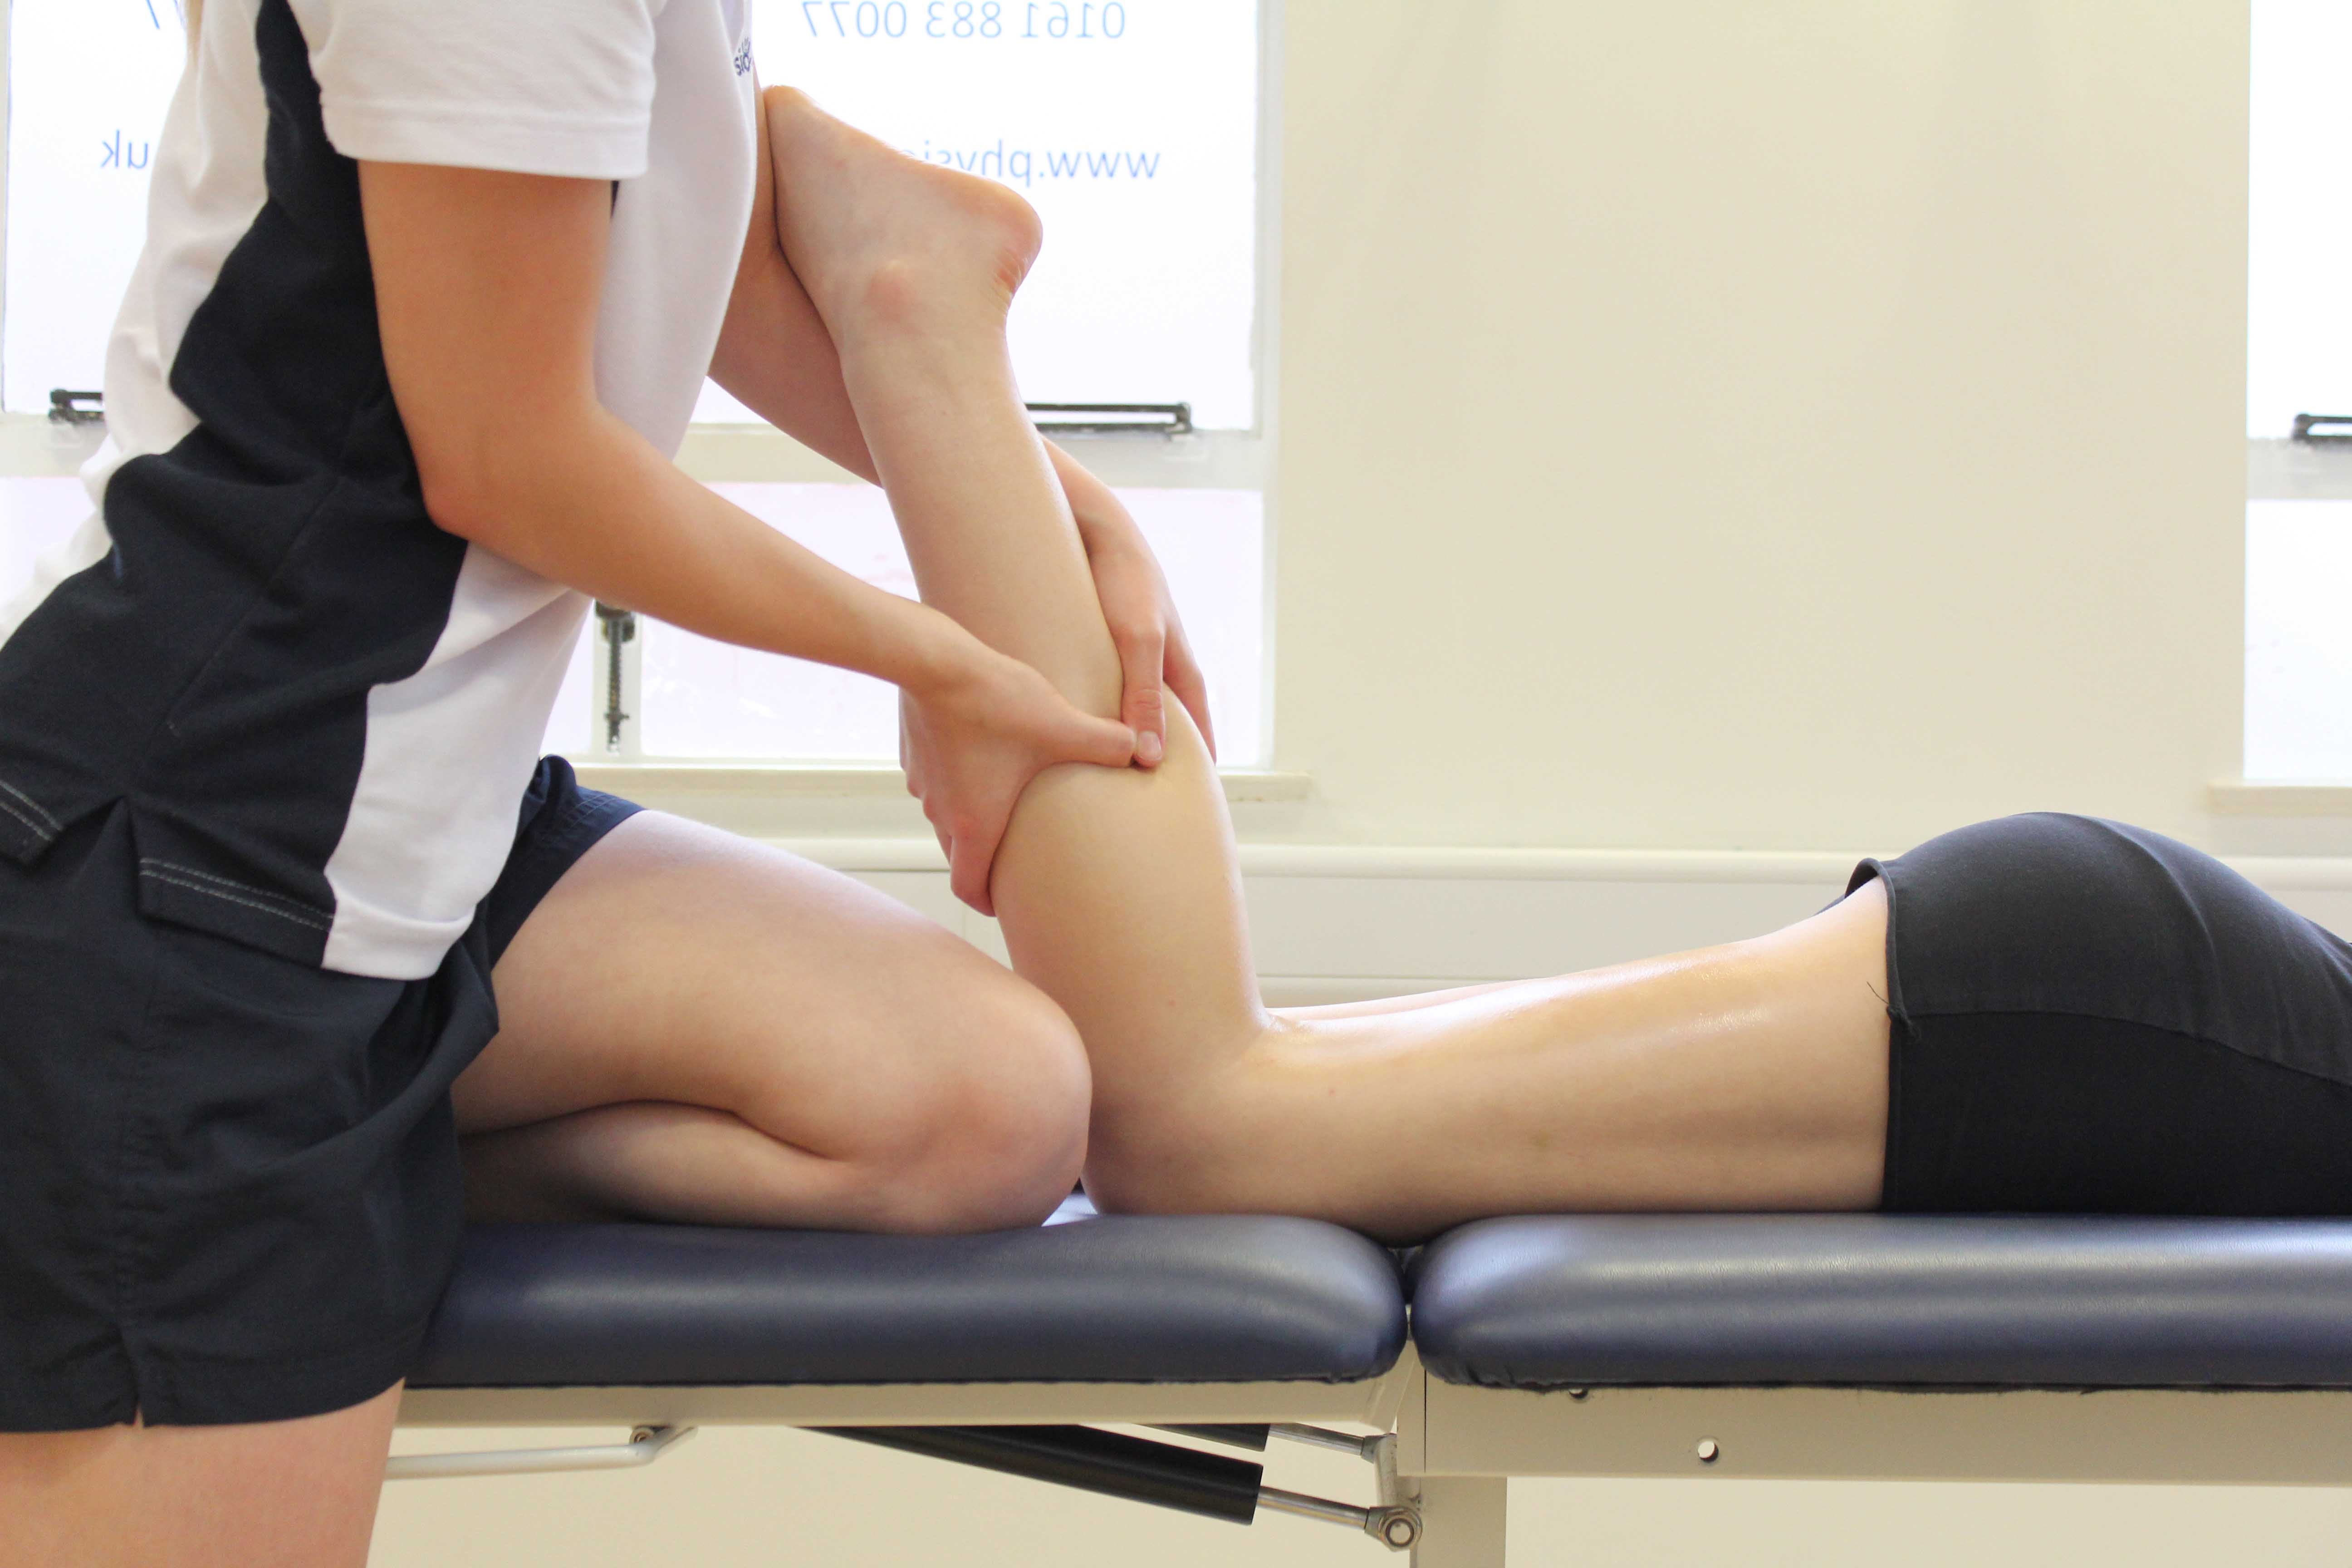 Trigger point massage applied to gastrocnemius muscle by specilaist therapist